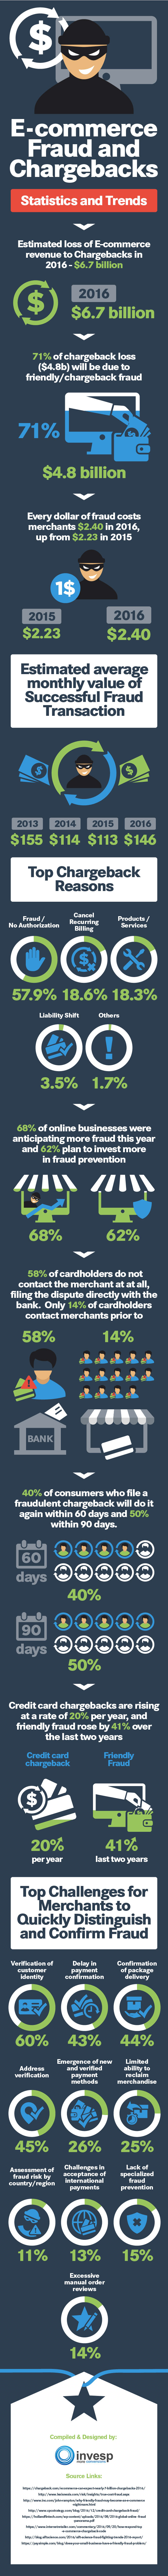 Ecommerce Fraud and Chargeback - Statistics and Trends